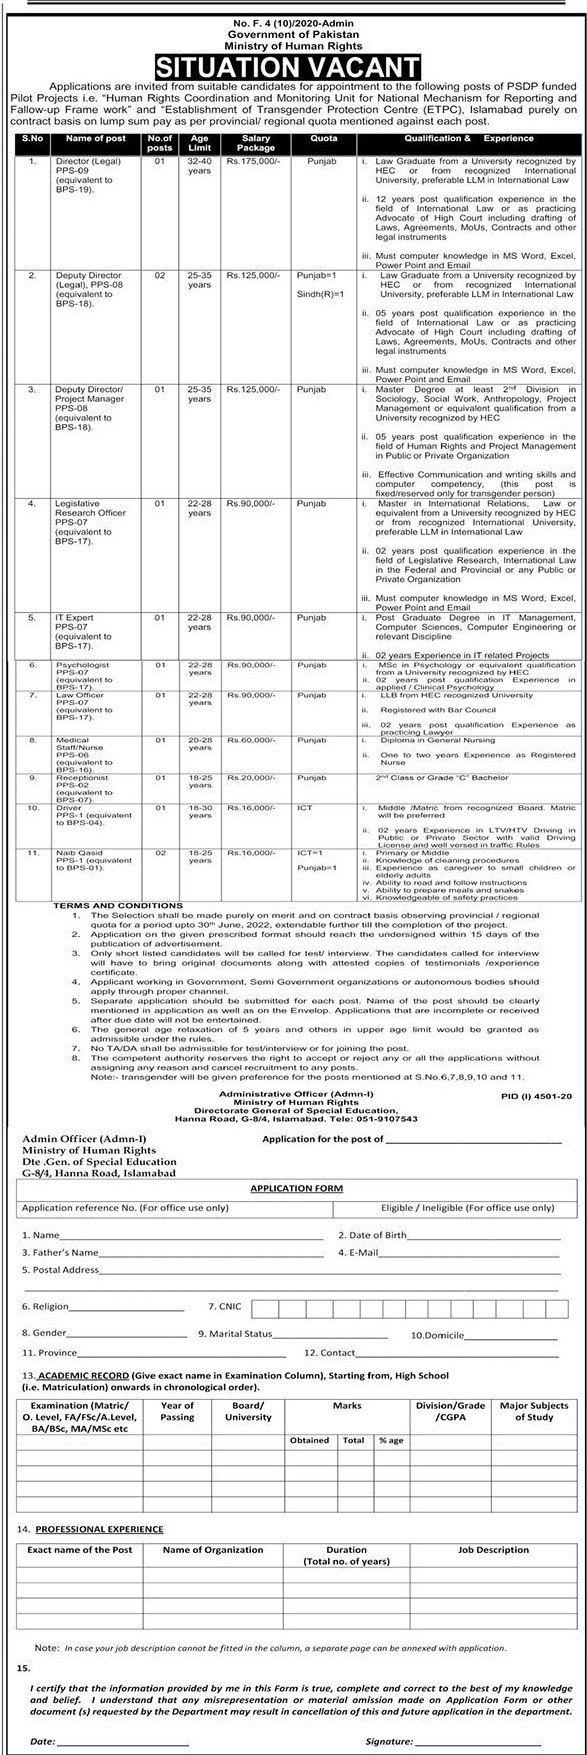 Ministry of Human Rights Jobs 2021 - Ministry of Human Rights Jobs 2021 Application Form